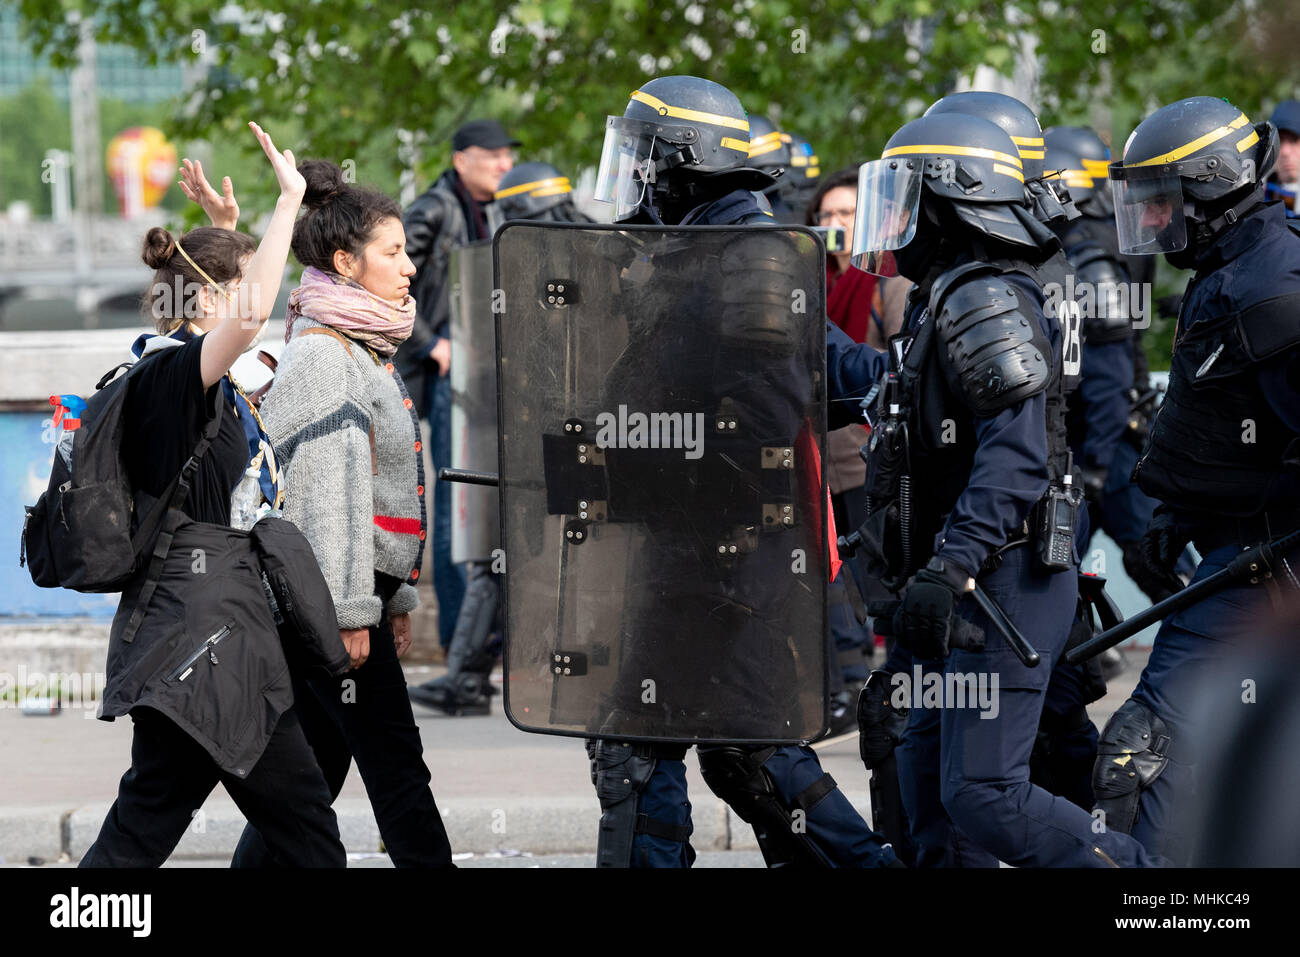 Paris, France. 1st May 2018. Workers Day manifestation. Two females challenge police during the May Day resistance as the police try to clear the area after rioting. 1st May 2018. Paris, France. Credit: Paul Roberts/Alamy Live News Stock Photo